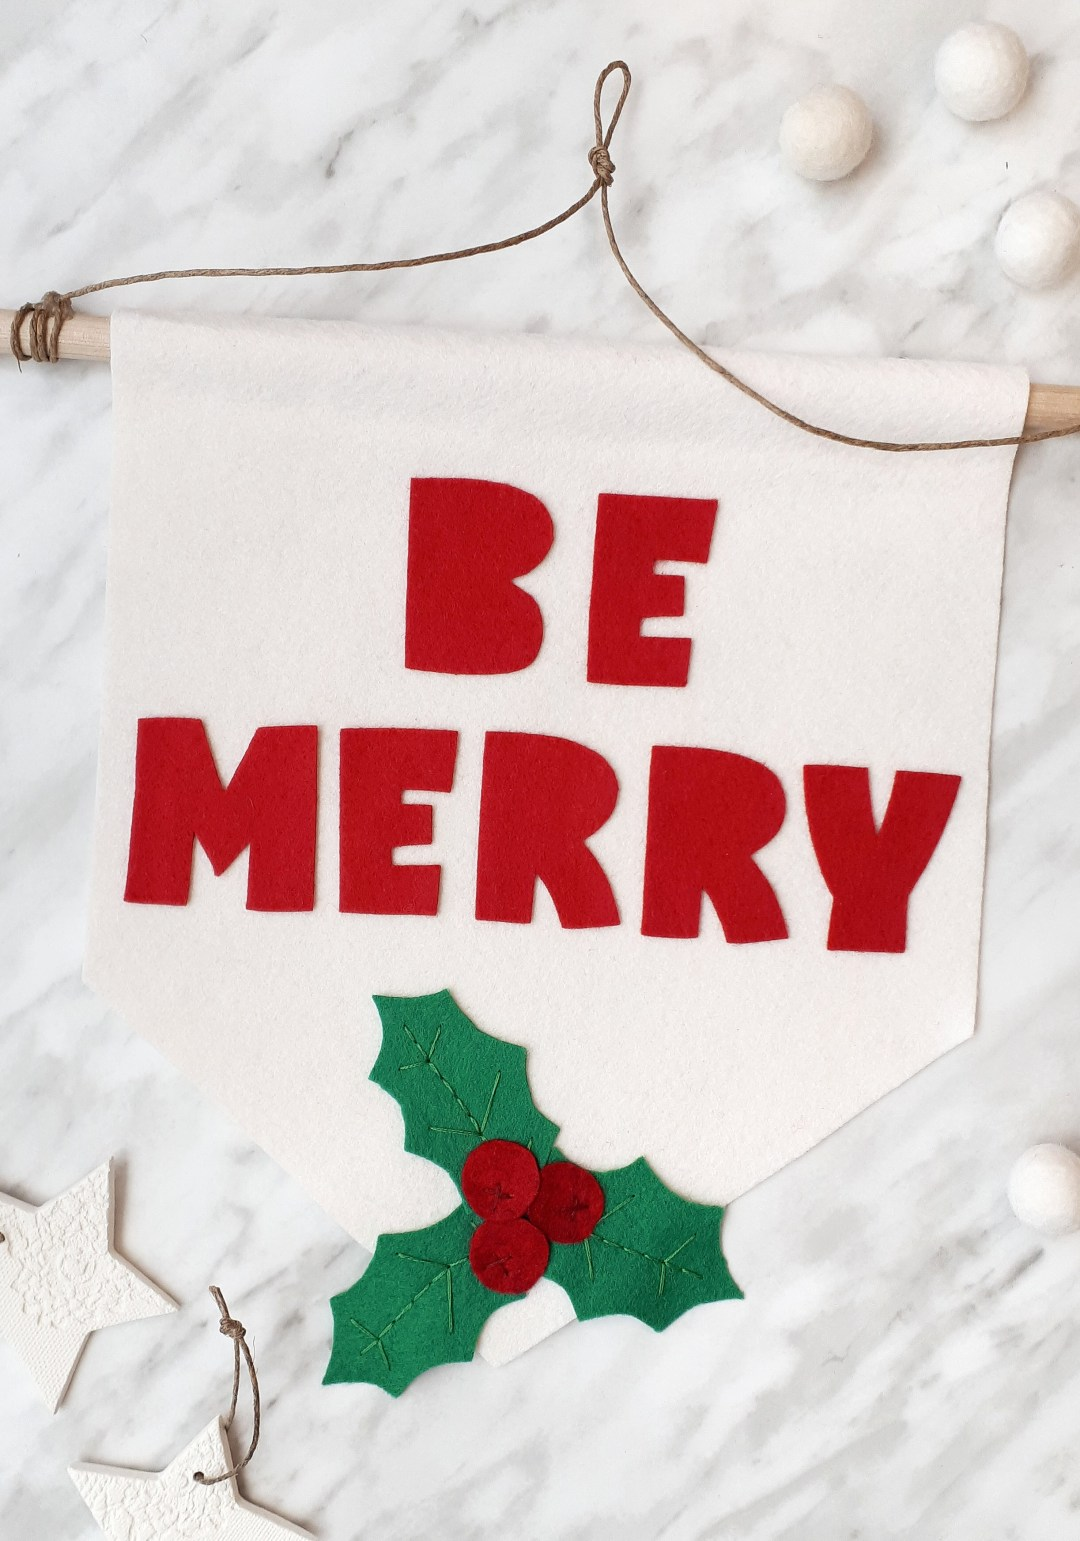 Make this sweet and simple DIY Christmas banner using my free printable pattern. This is a quick project you can finish in 45 mins. Makes a great hostess gift for your next Christmas party!